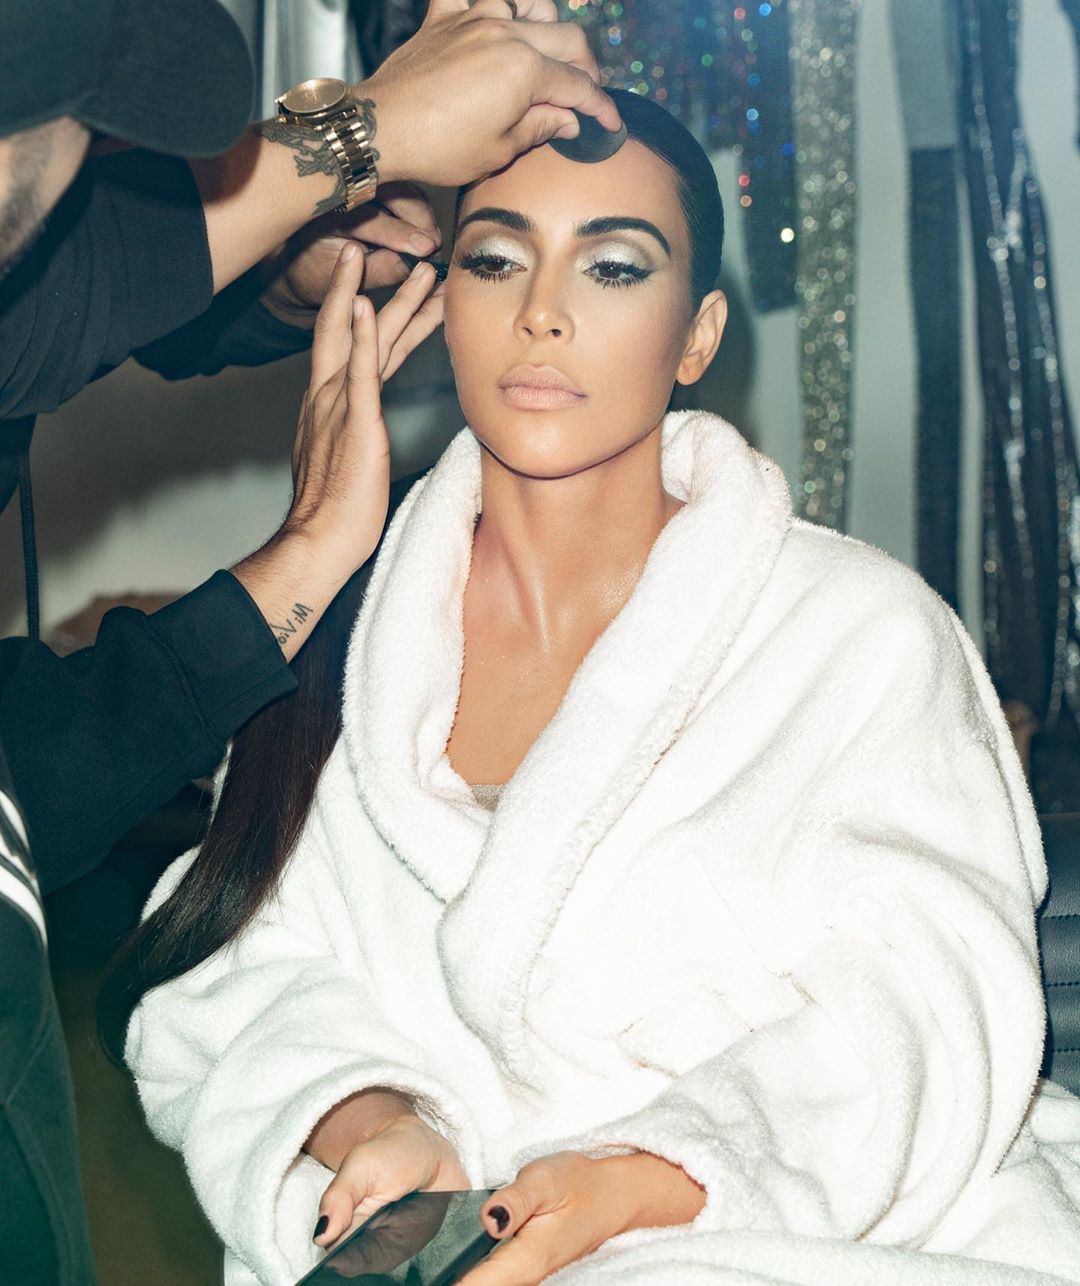 Kim Kardashian rocking a Formfitting light grey dress with a deep sweetheart neckline